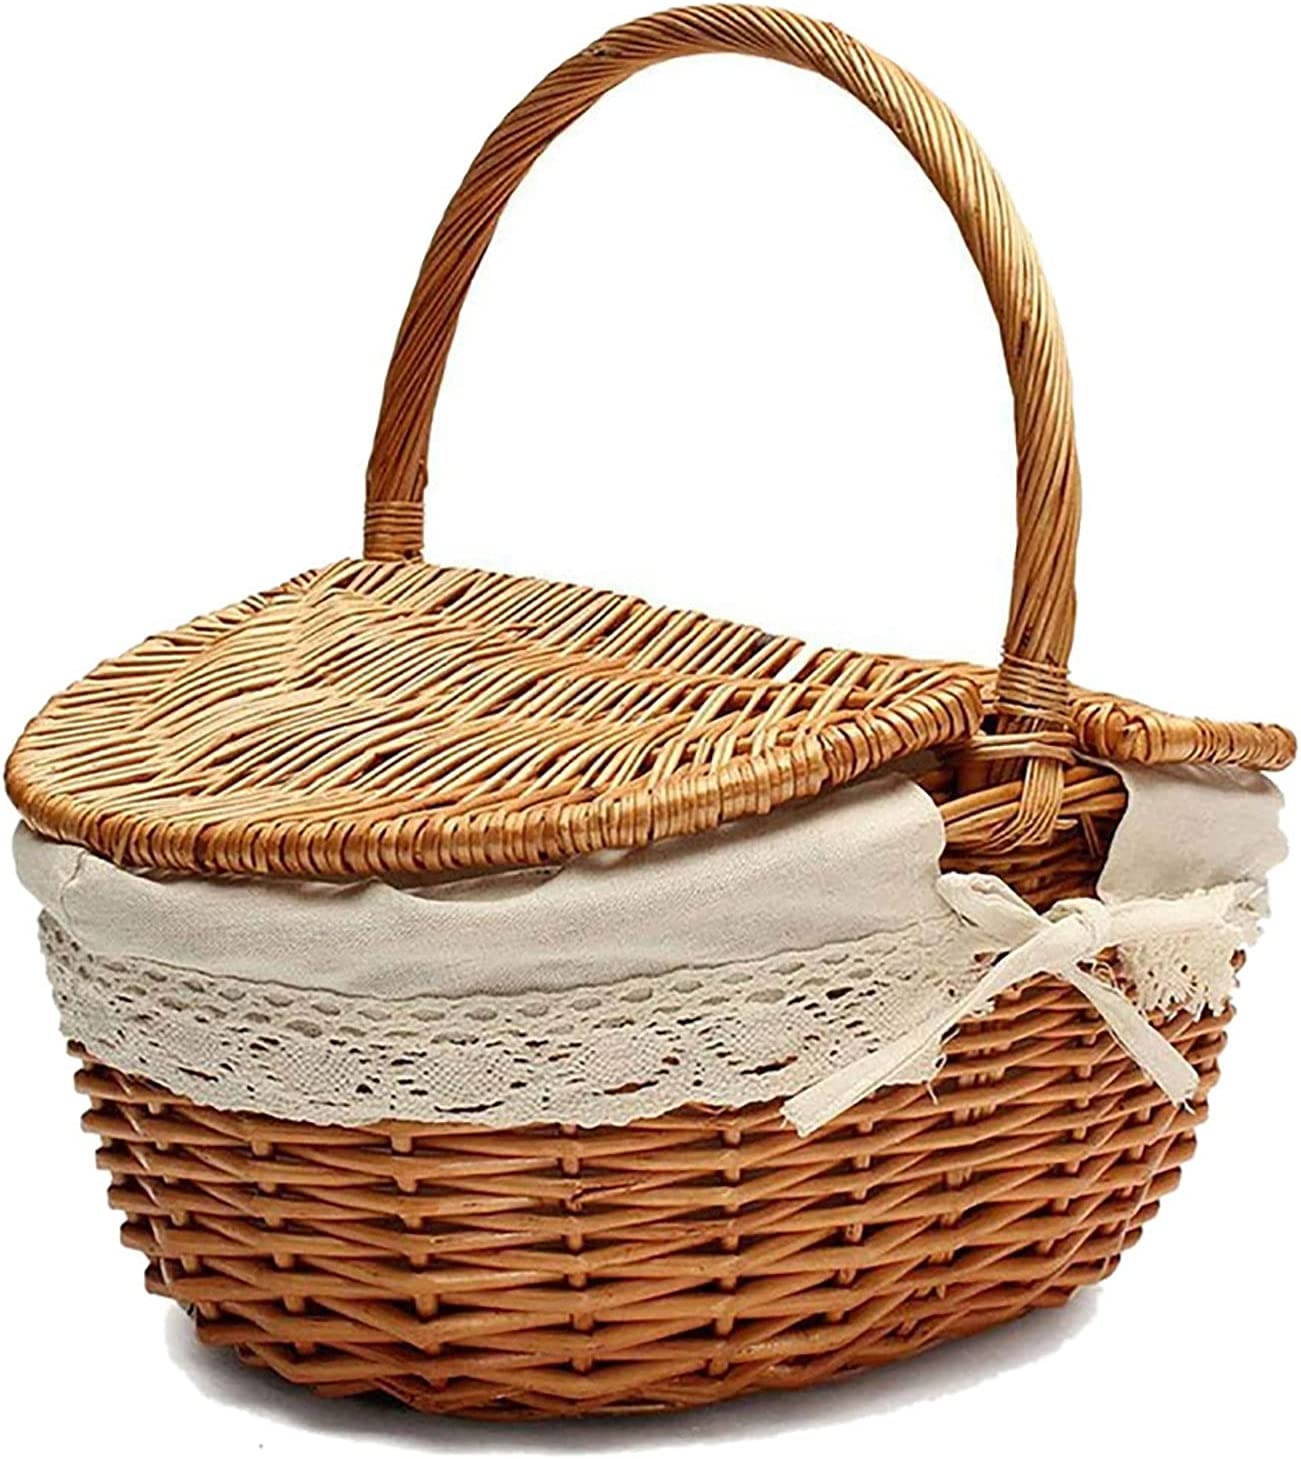 GZP Handmade Wicker Popular popular Basket with Max 51% OFF Camping Picnic Handle Ba